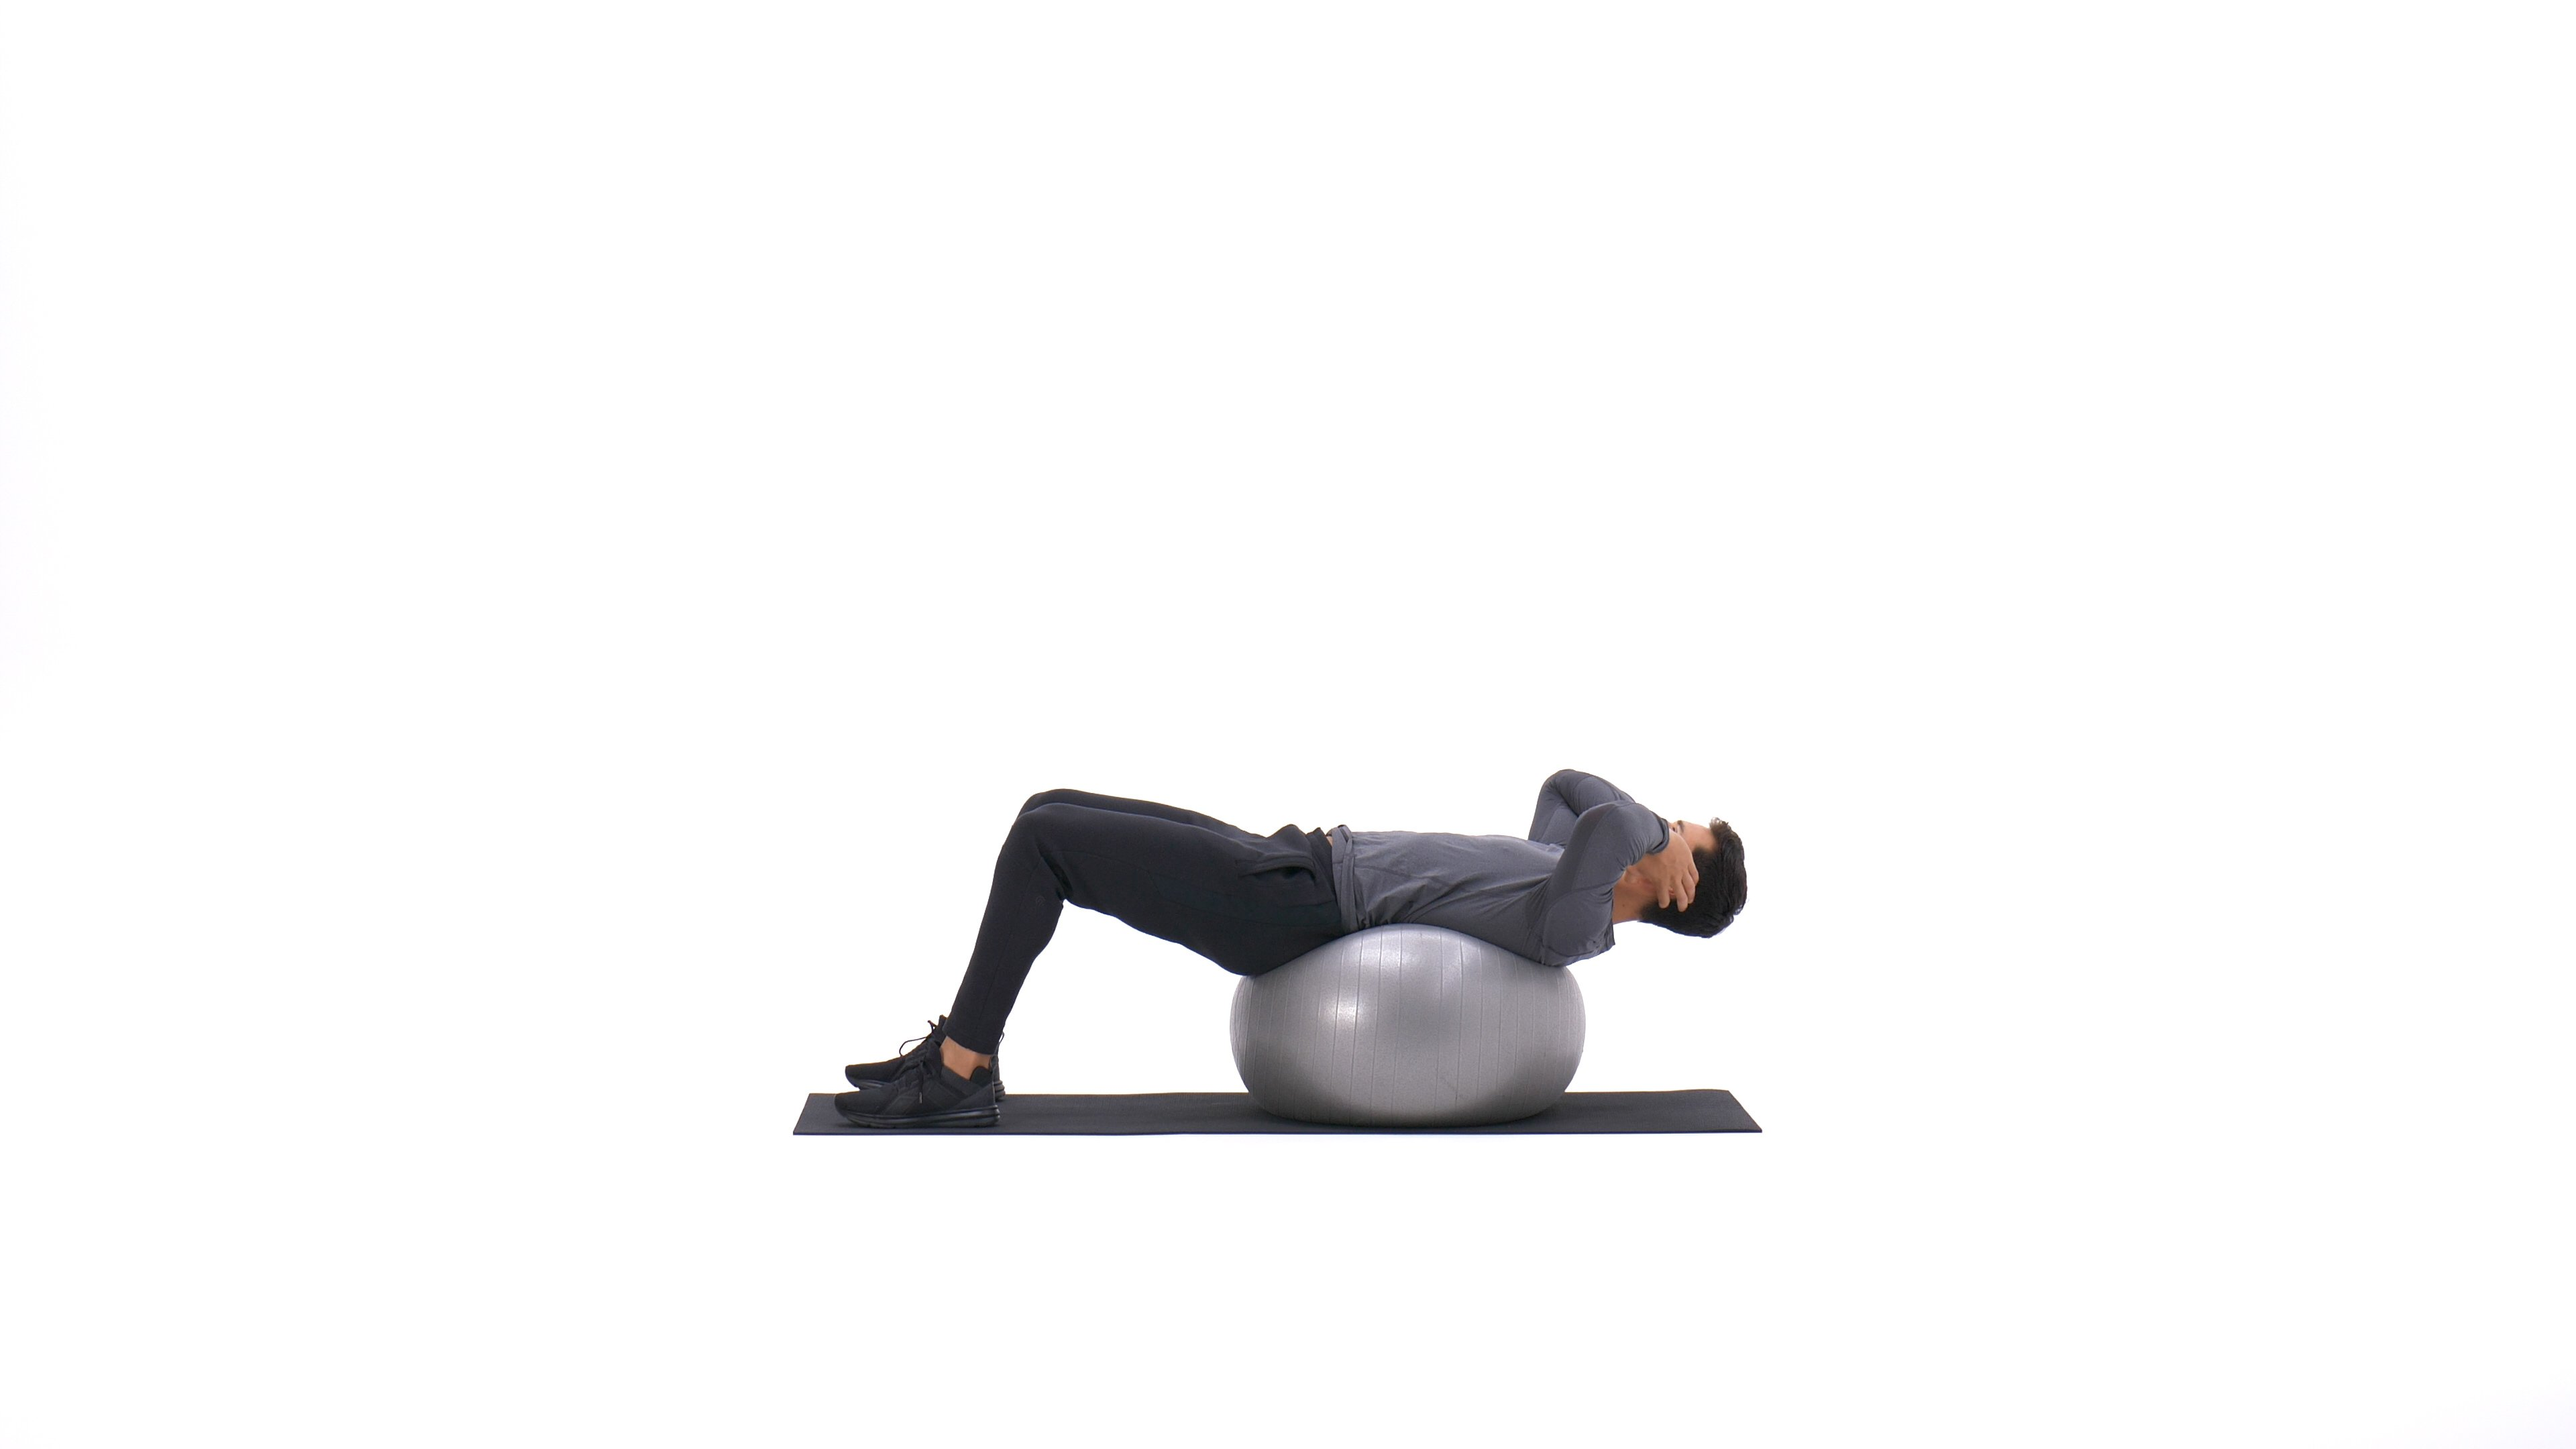 Exercise ball crunch image